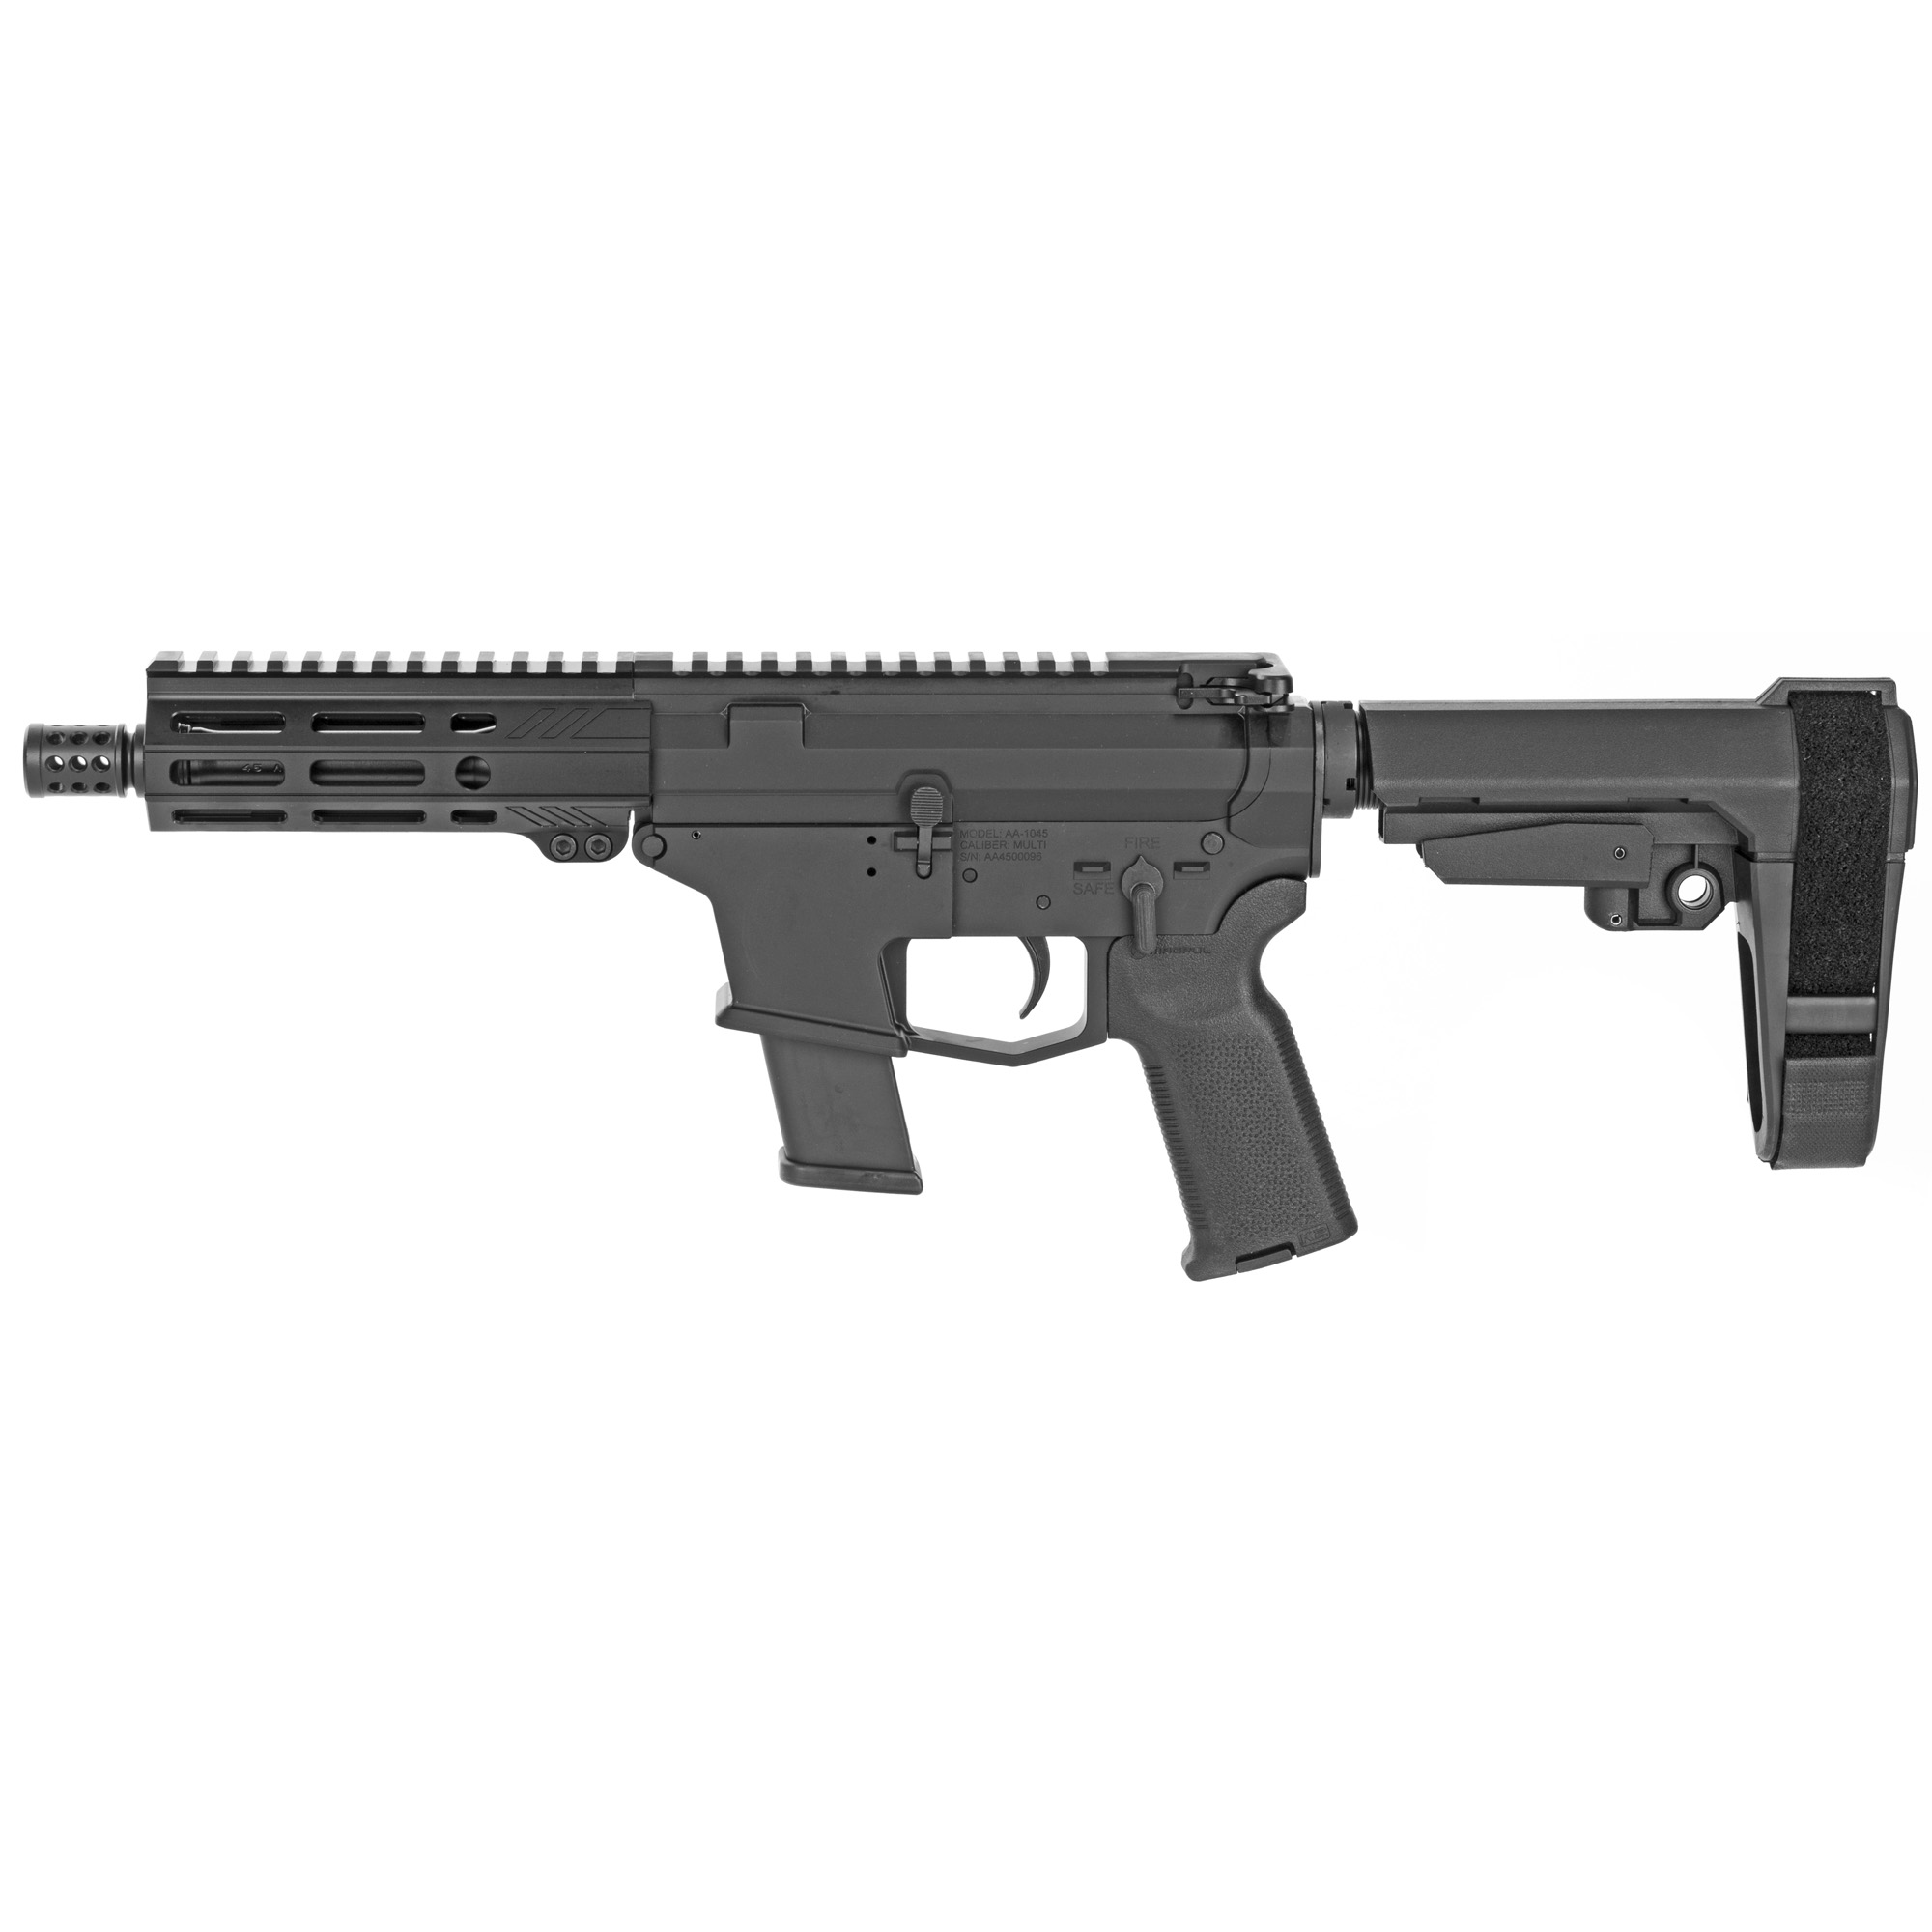 """The UDP-45 Pistol with SB Tactical SBA3 stabilizing brace is a compact AR-45 style firearm chambered in 45ACP and fed with GLOCK(R) magazines. It features last round bolt hold open"""" an integrated trigger guard"""" flared magwell and a 5.5"""" free float M-LOK hand guard with a modern"""" ergonomic"""" 7 side design. Machined from 7075-T6 aluminum the UDP-45 comes with a lifetime warranty. Includes one GLOCK(R) OEM 45acp magazine."""